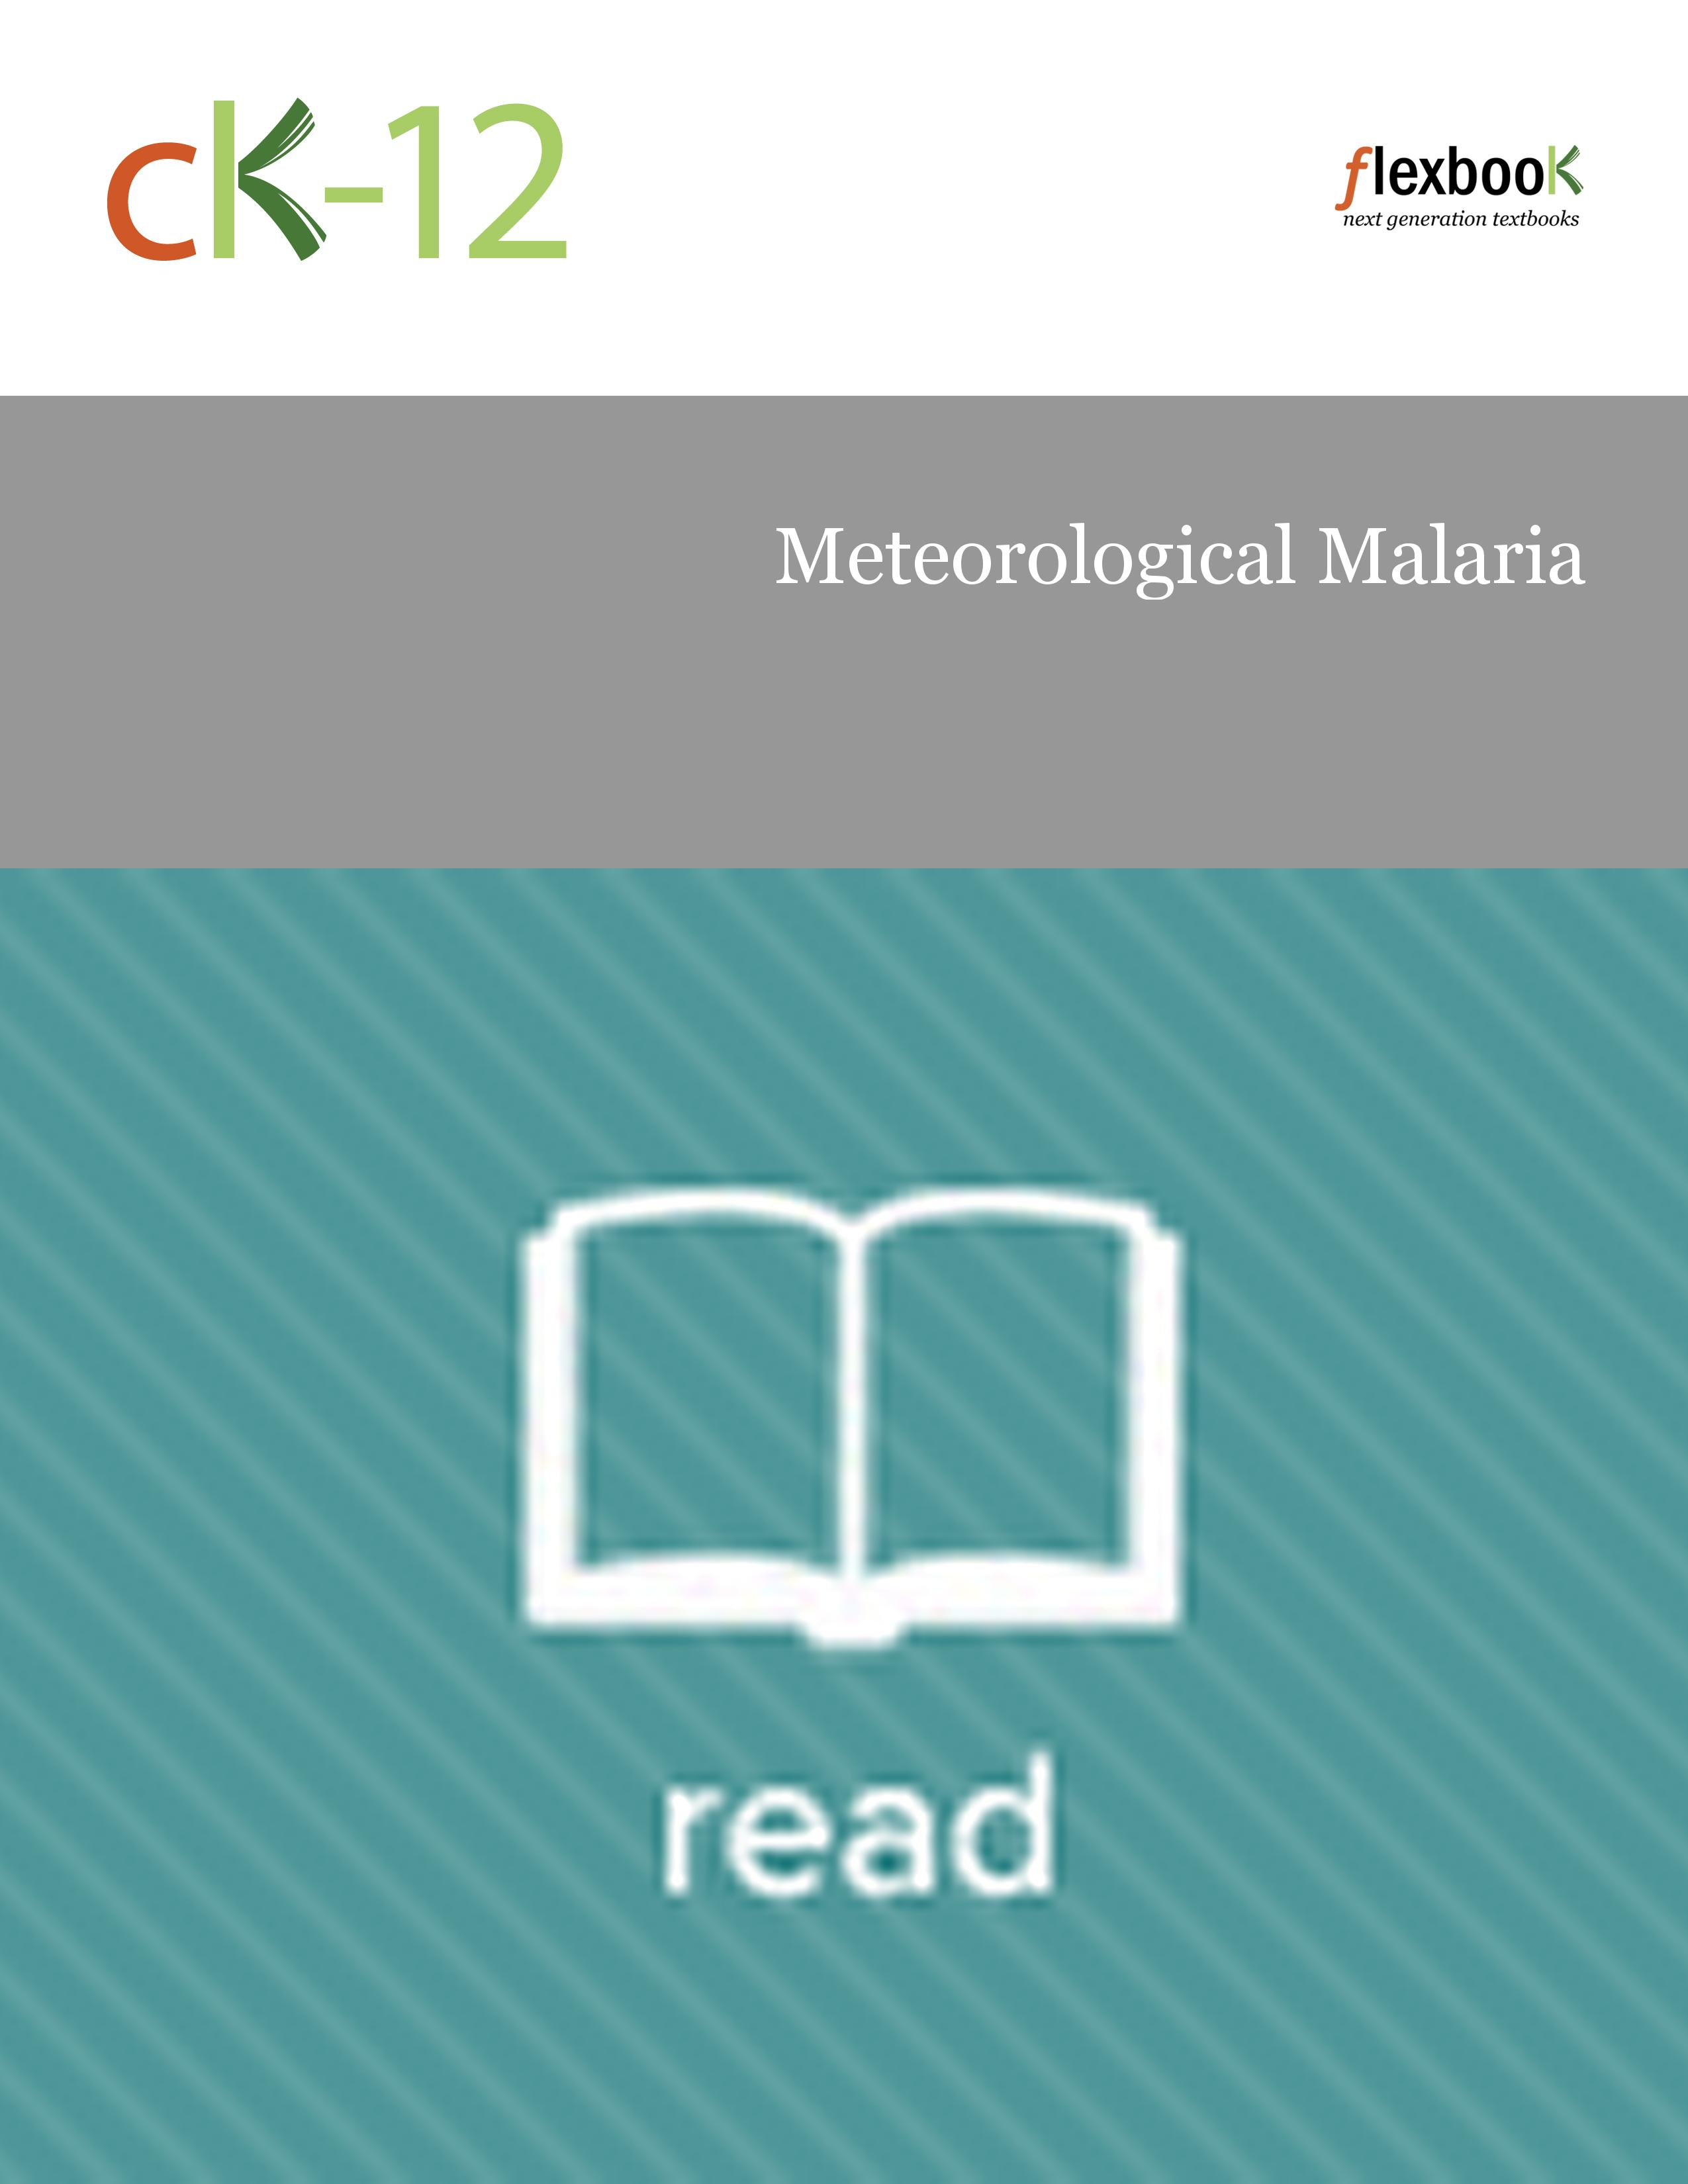 Meteorological Malaria